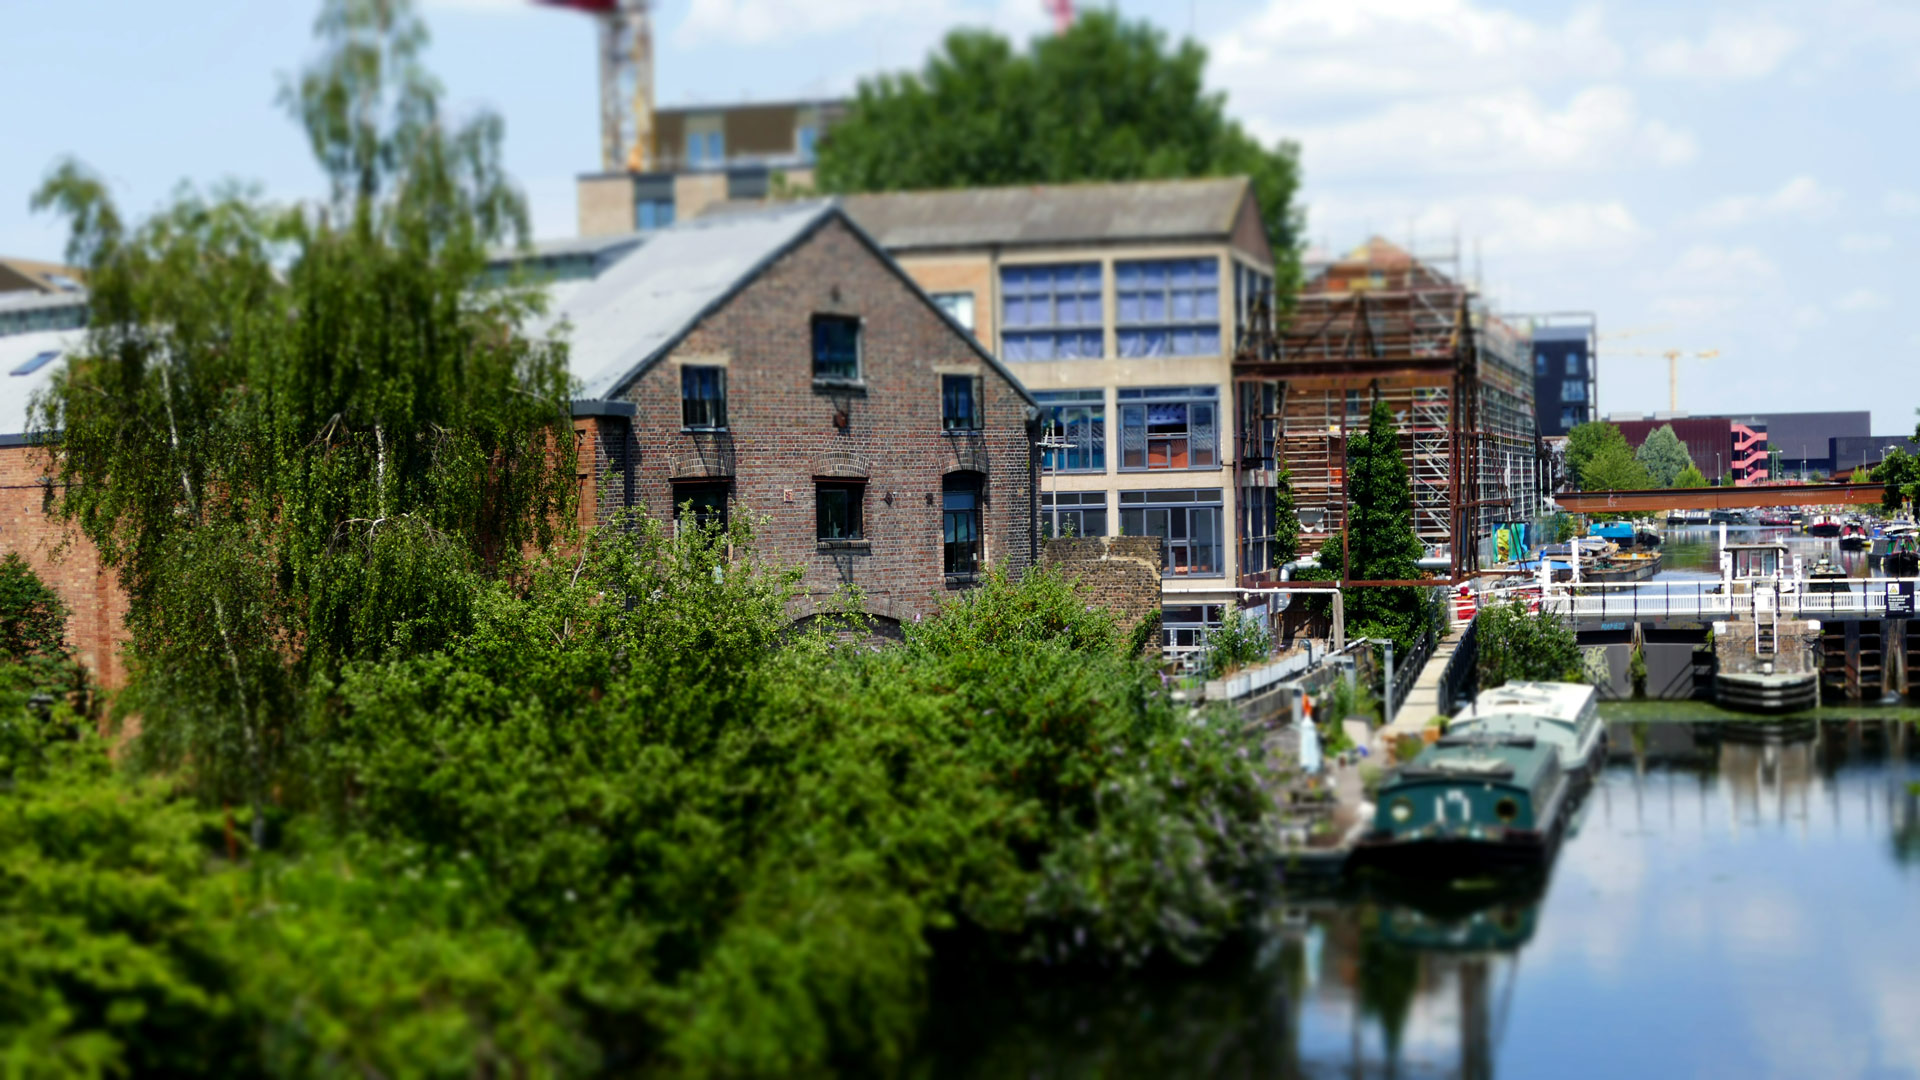 The Studio on the banks of the River Lea